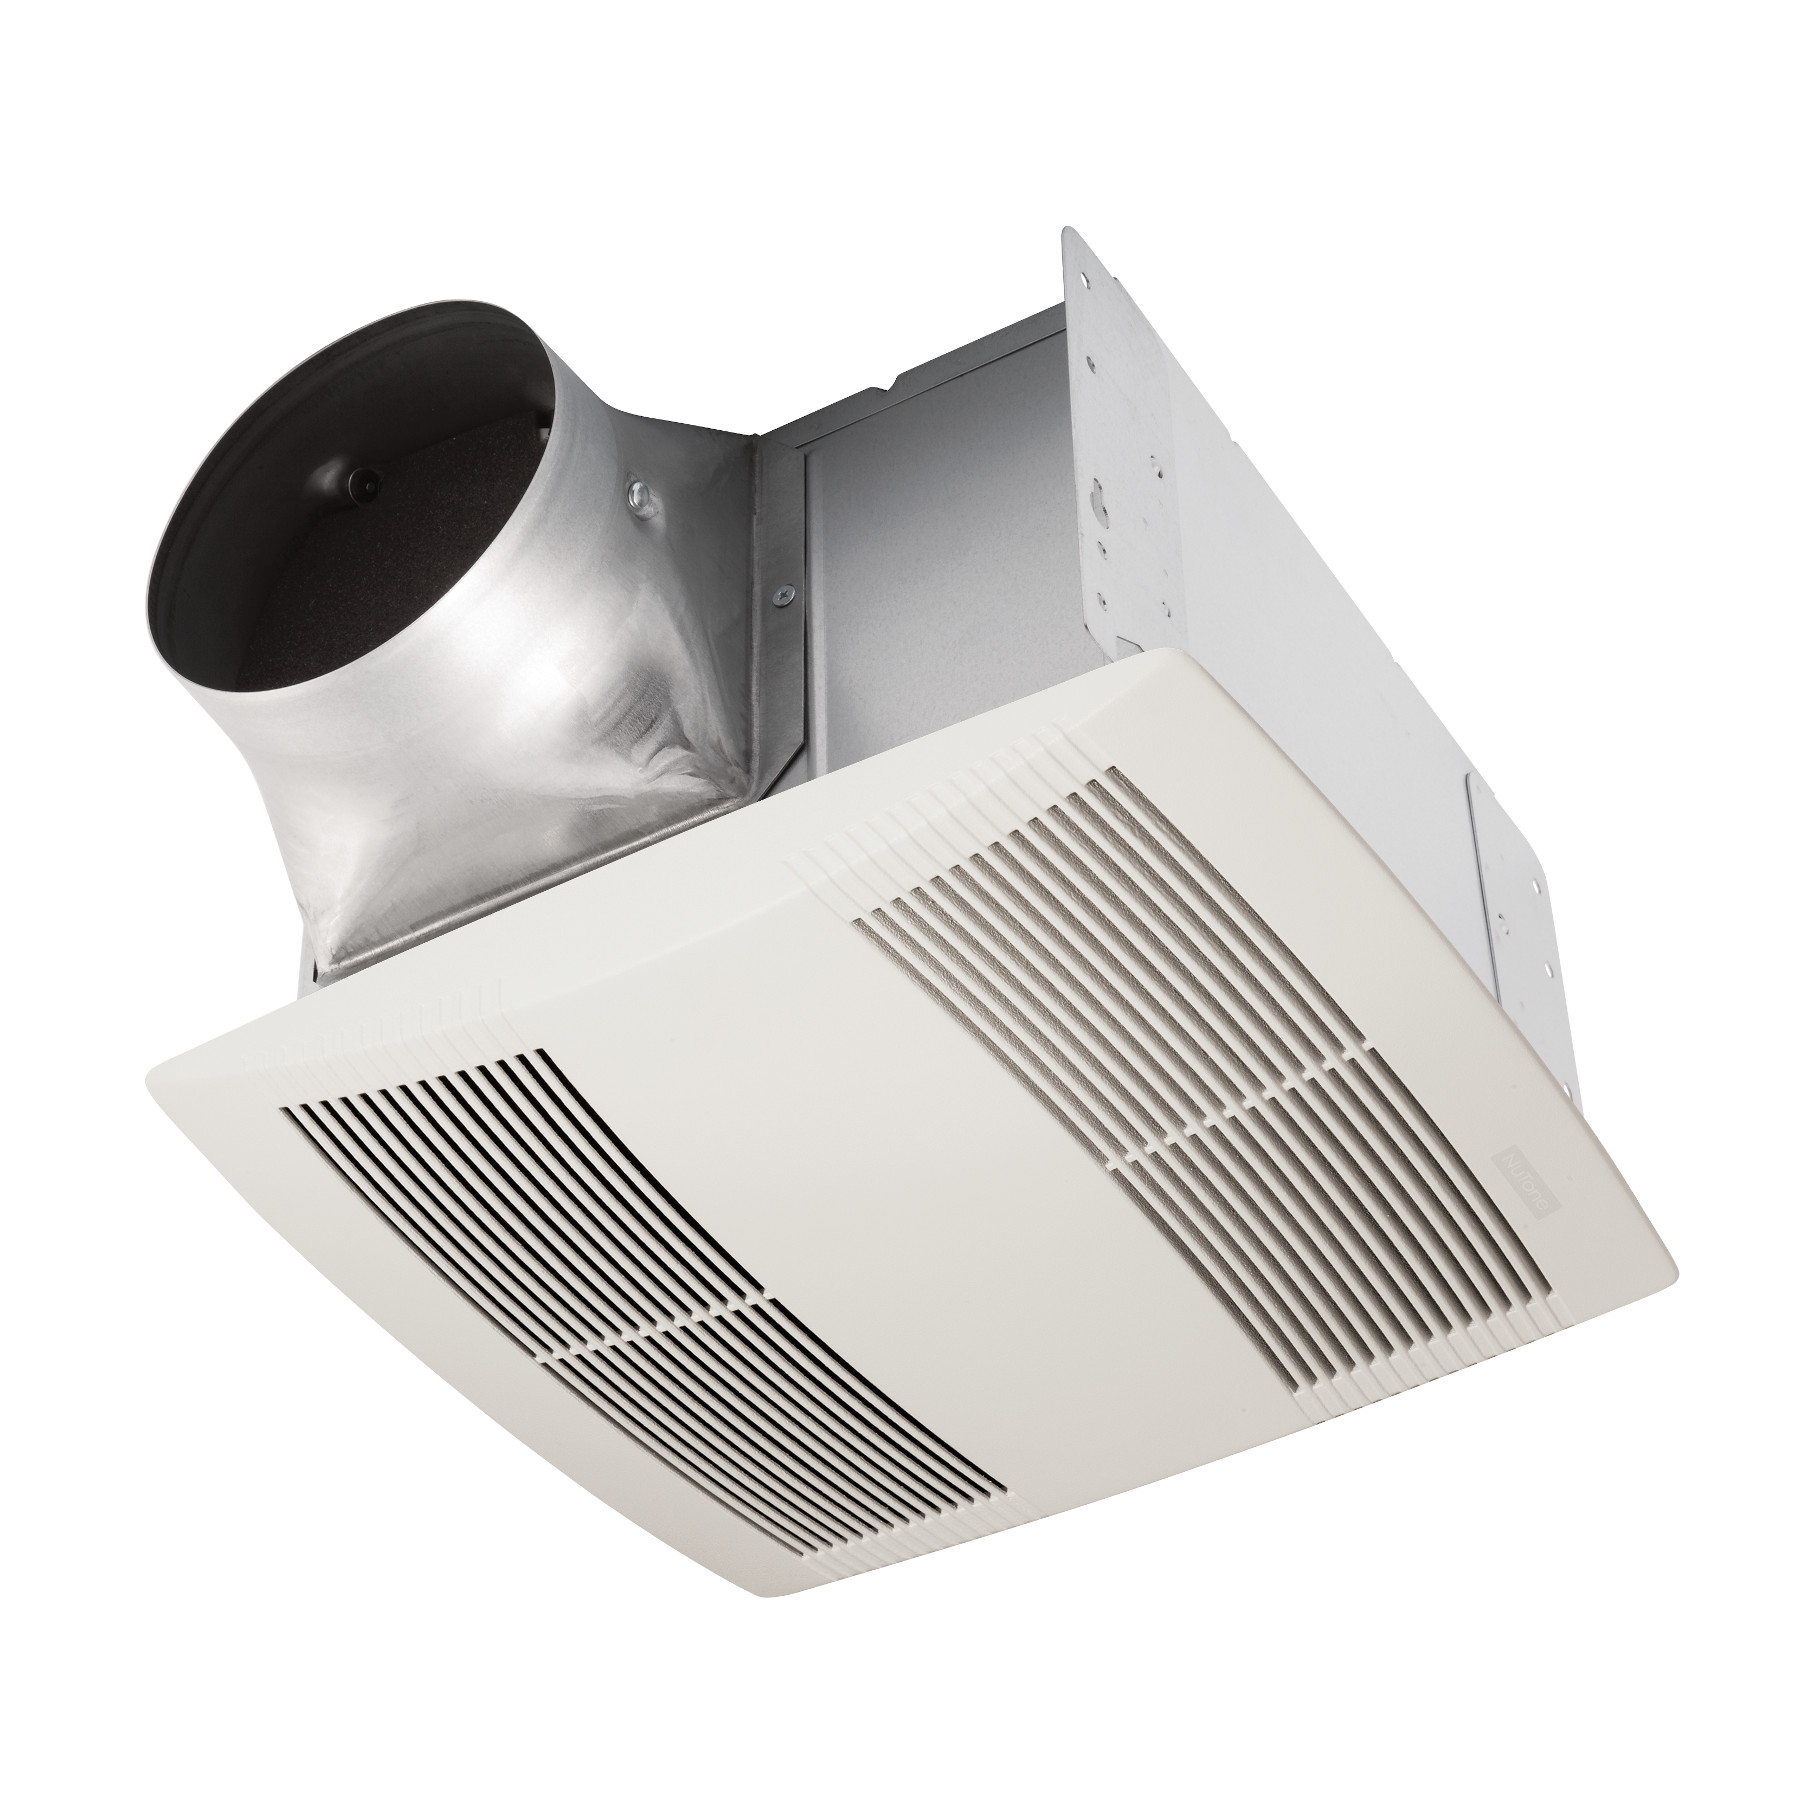 NuTone® QT 130 CFM Ventilation Fan, ENERGY STAR®